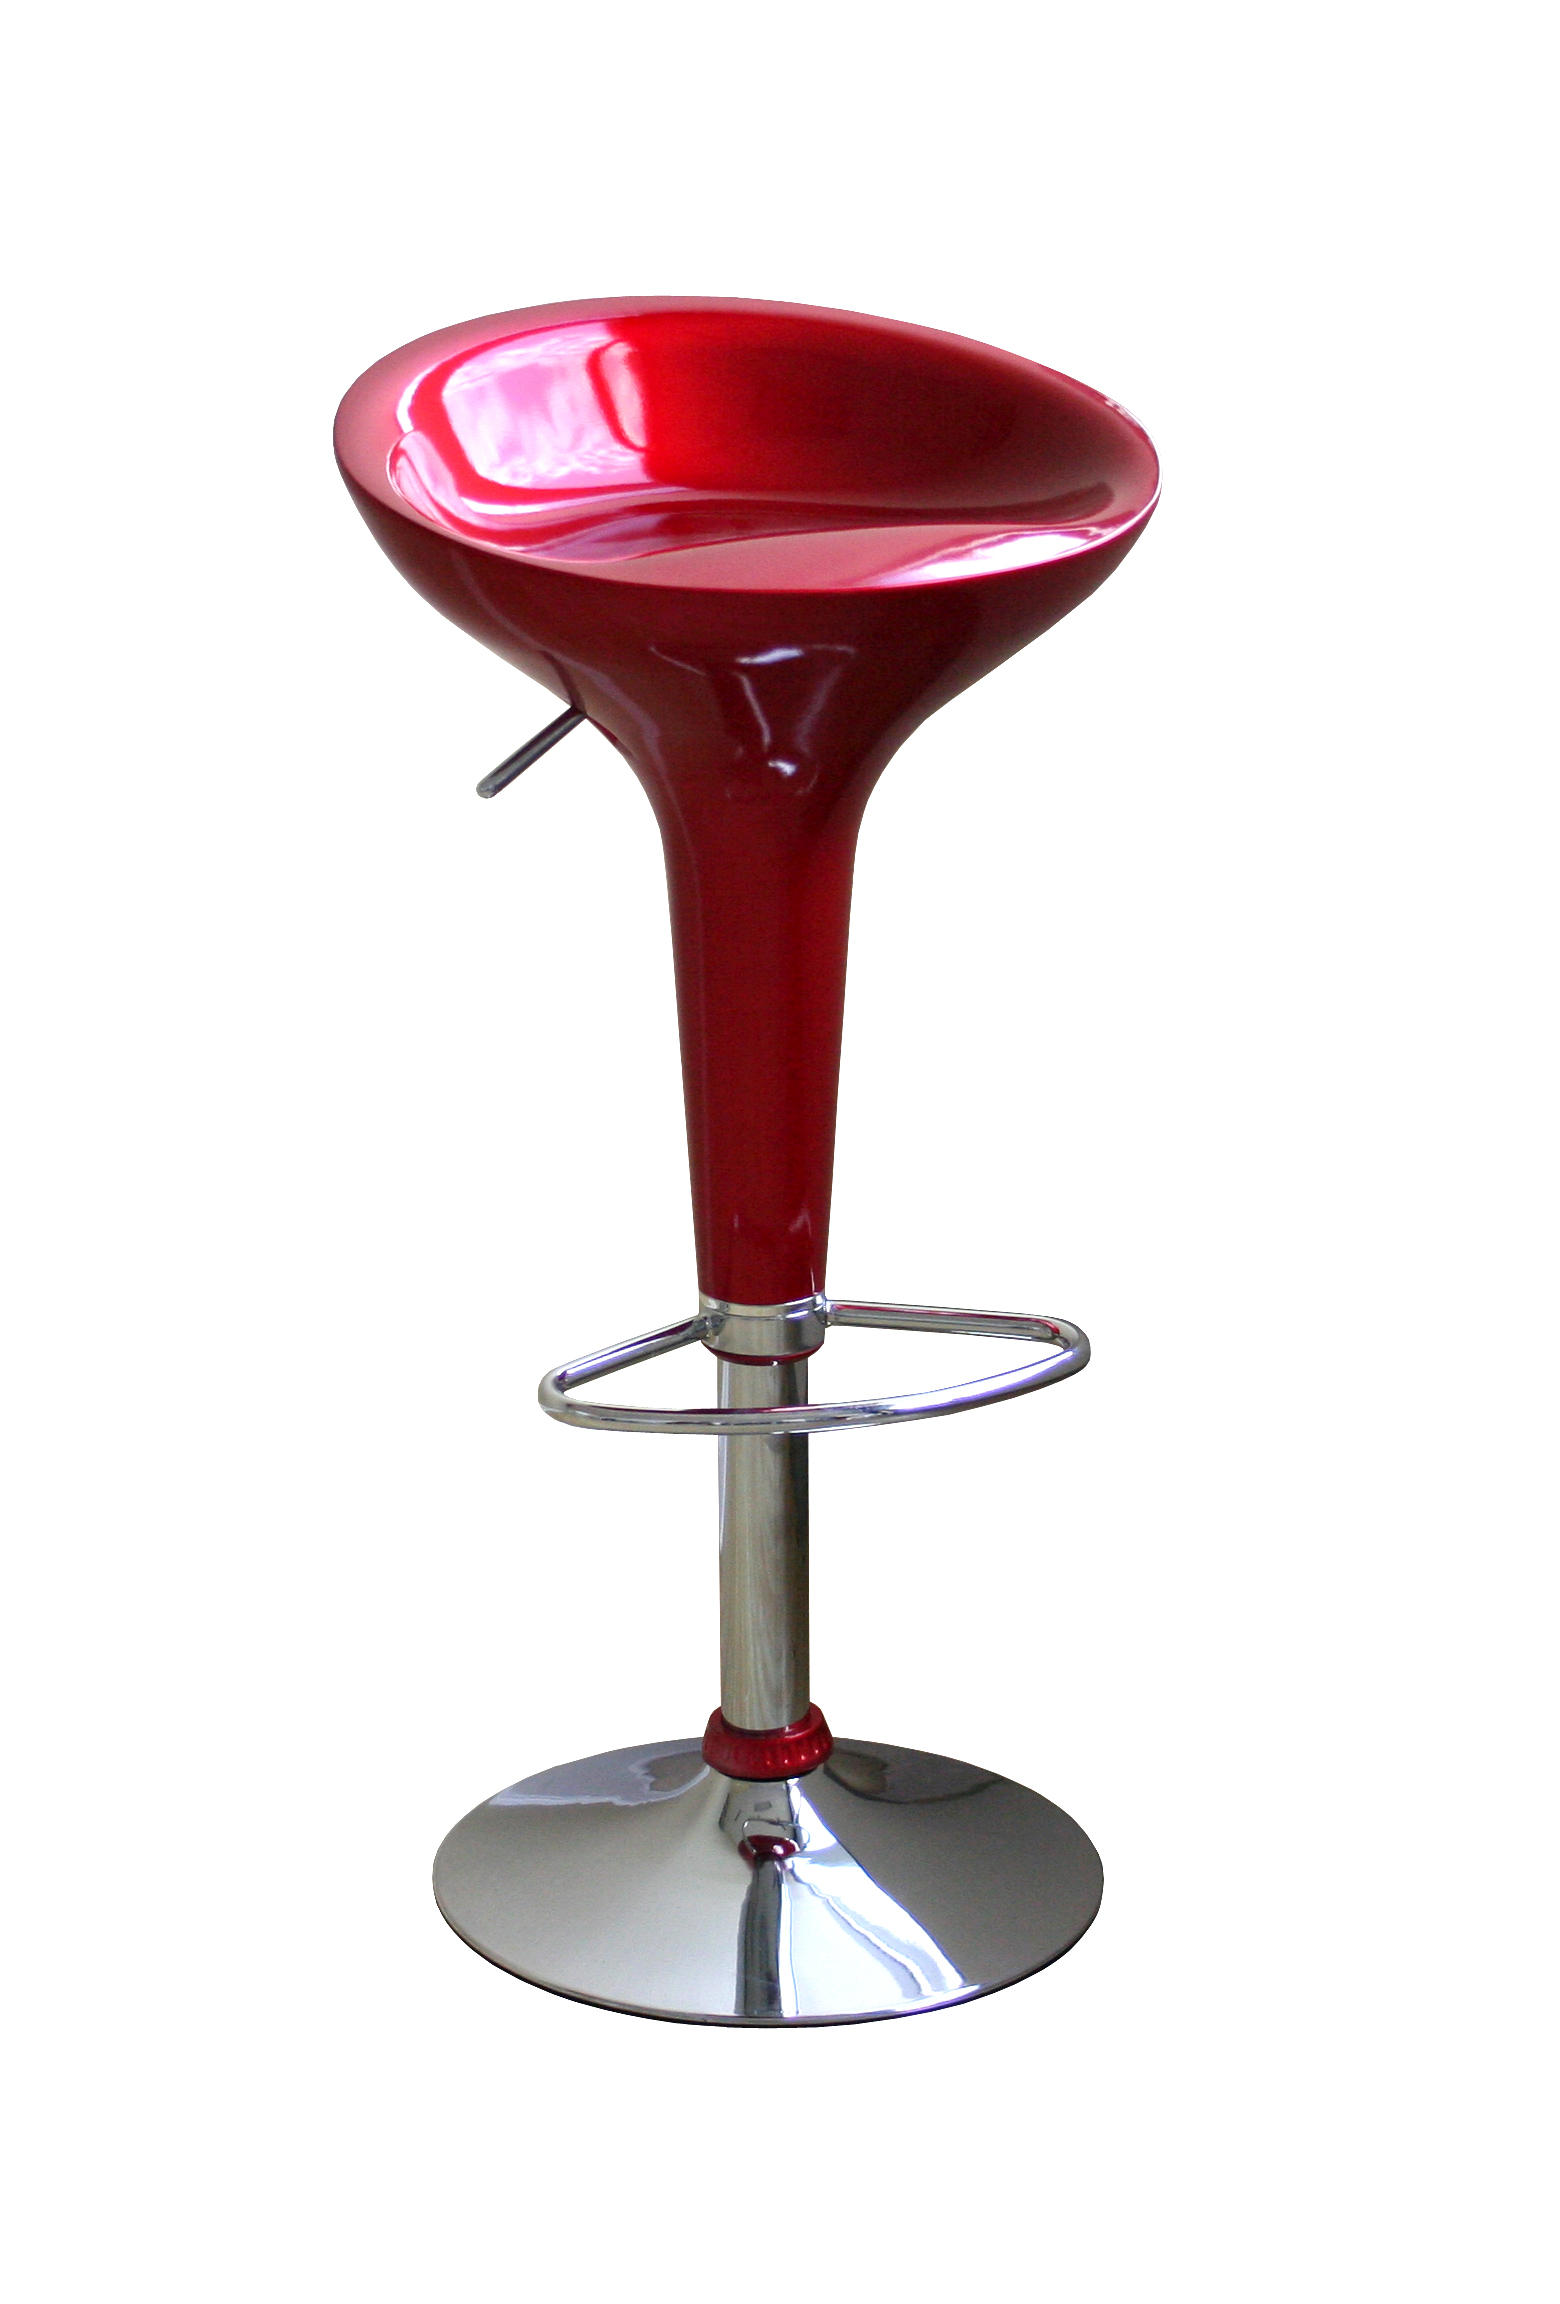 Modern Red Kitchen Stools Quicuacom : Baxton Studio Set of 2 Baxton Studio Red Vinyl Modern Bar Stool A148 red Bar Stool00 from quicua.com size 1560 x 2304 jpeg 705kB